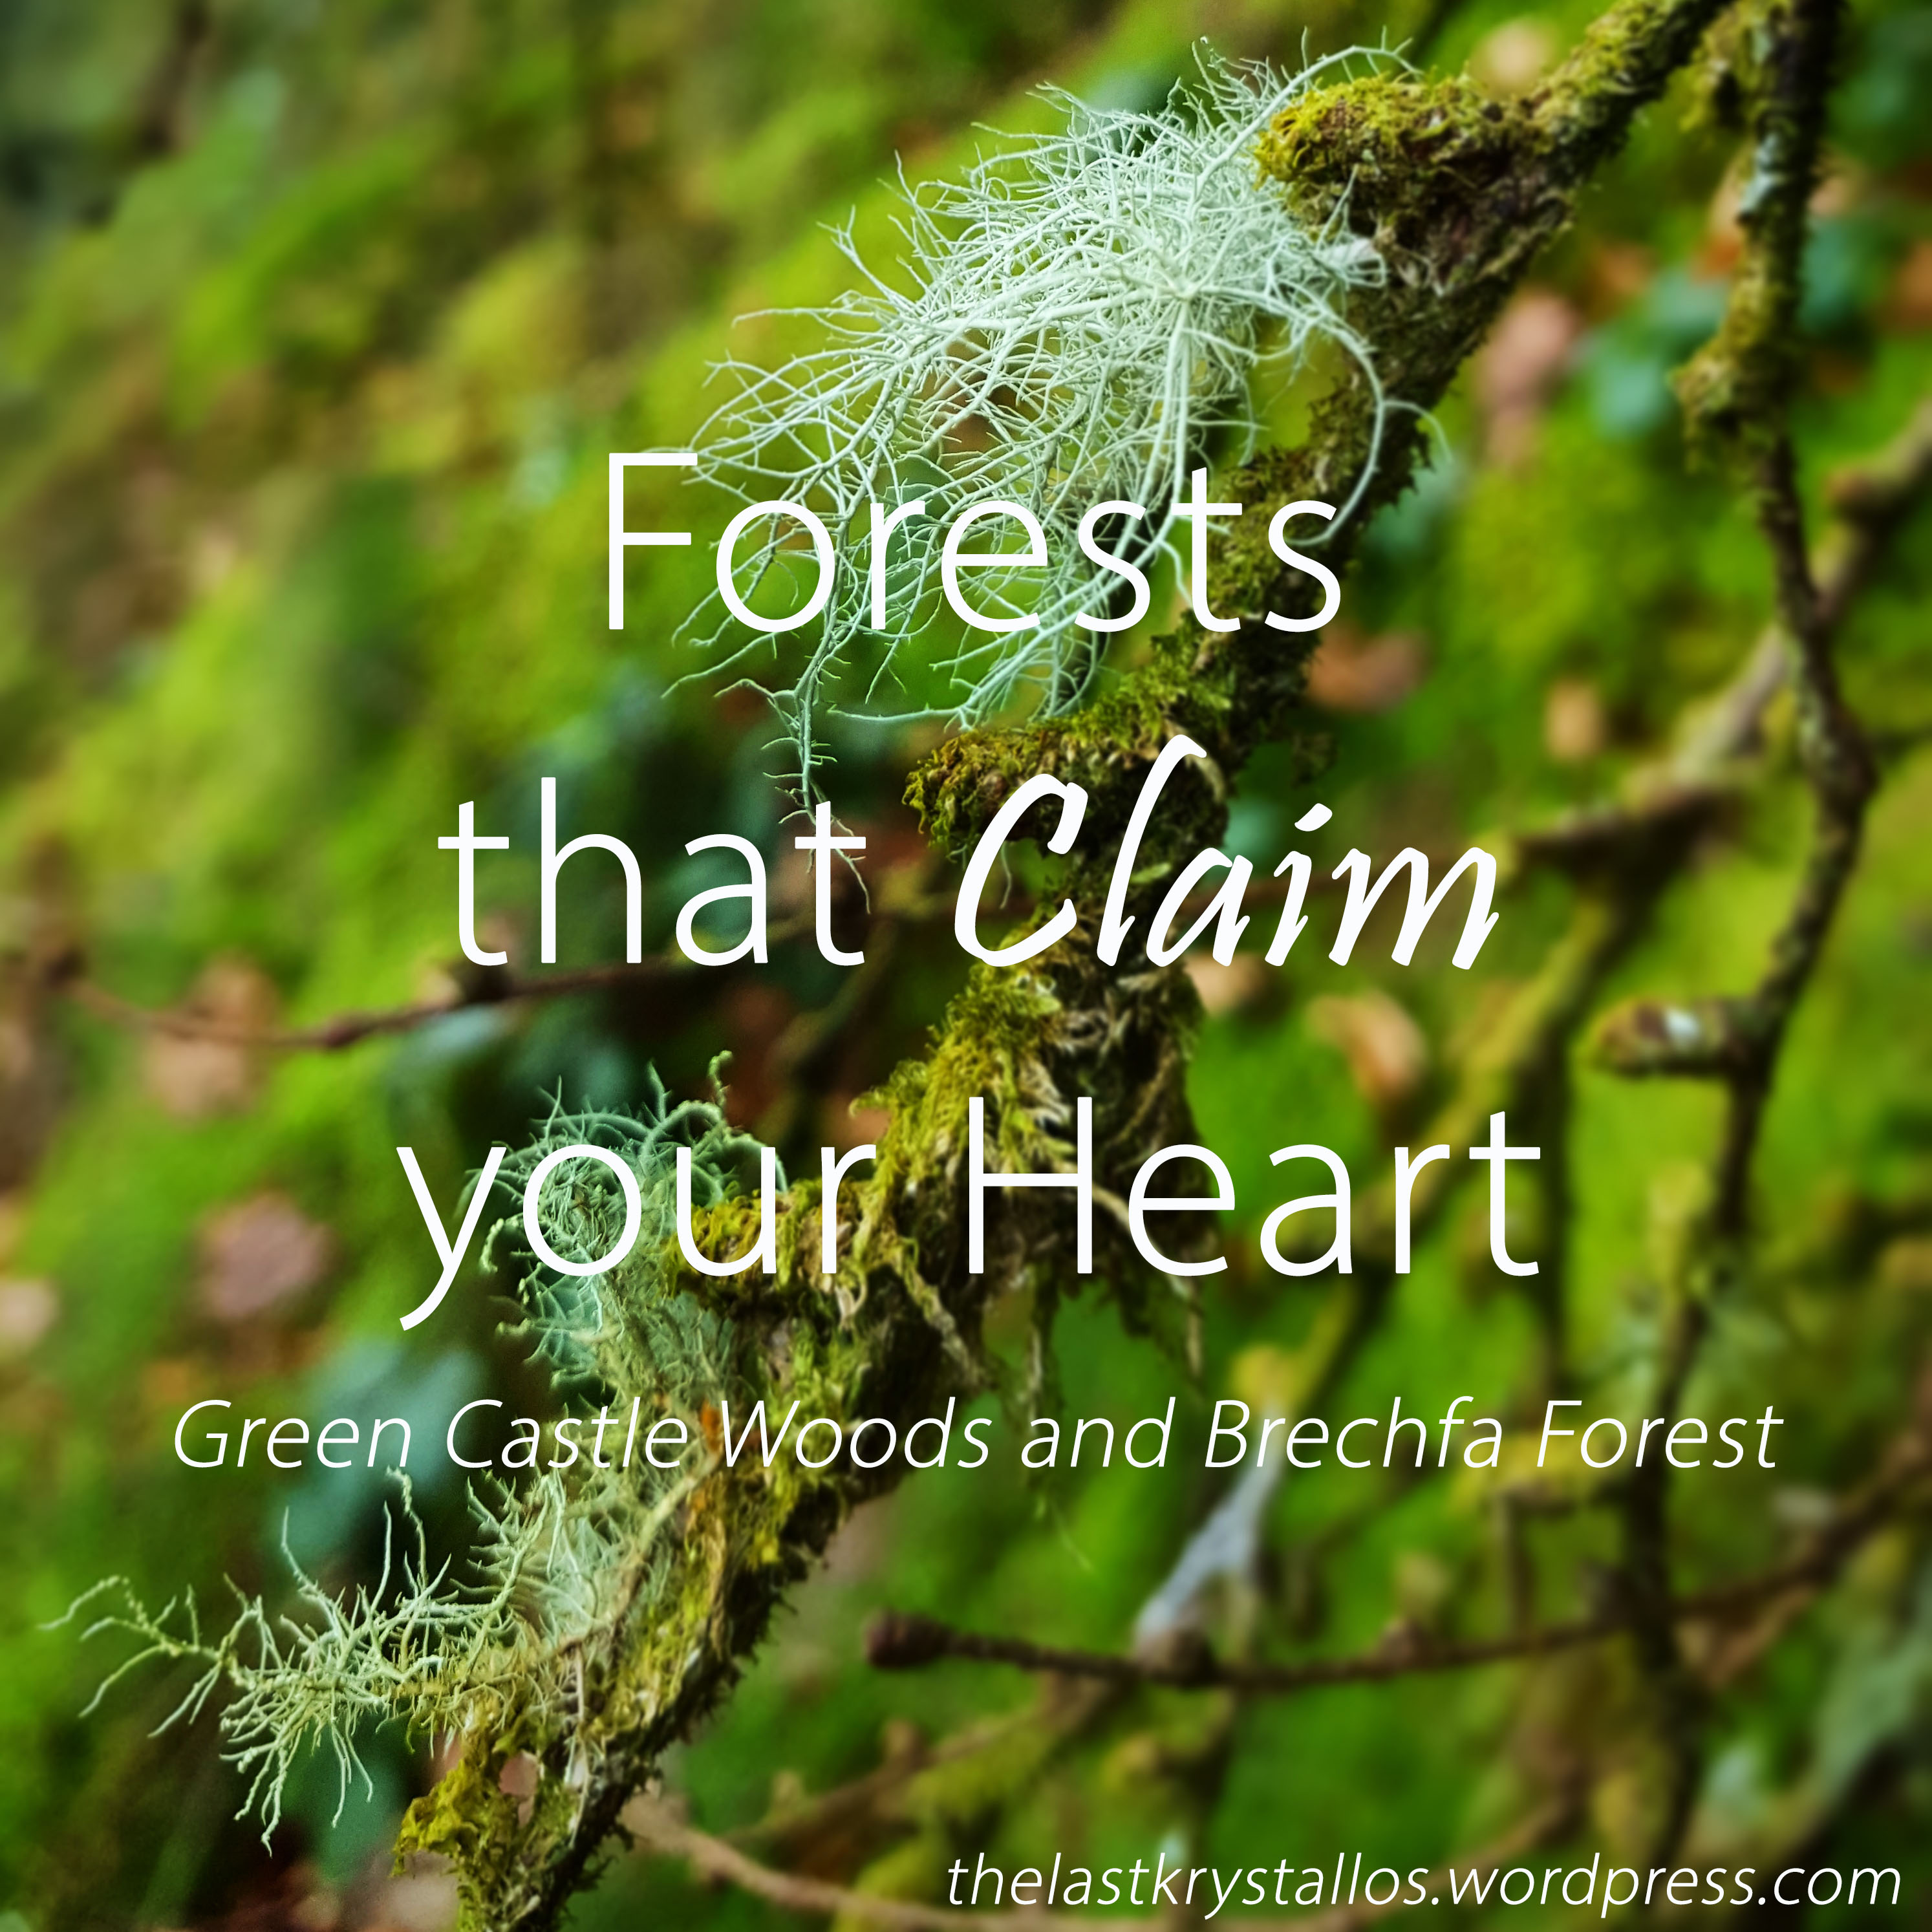 Forests that claim your Heart - The Last Krystallos